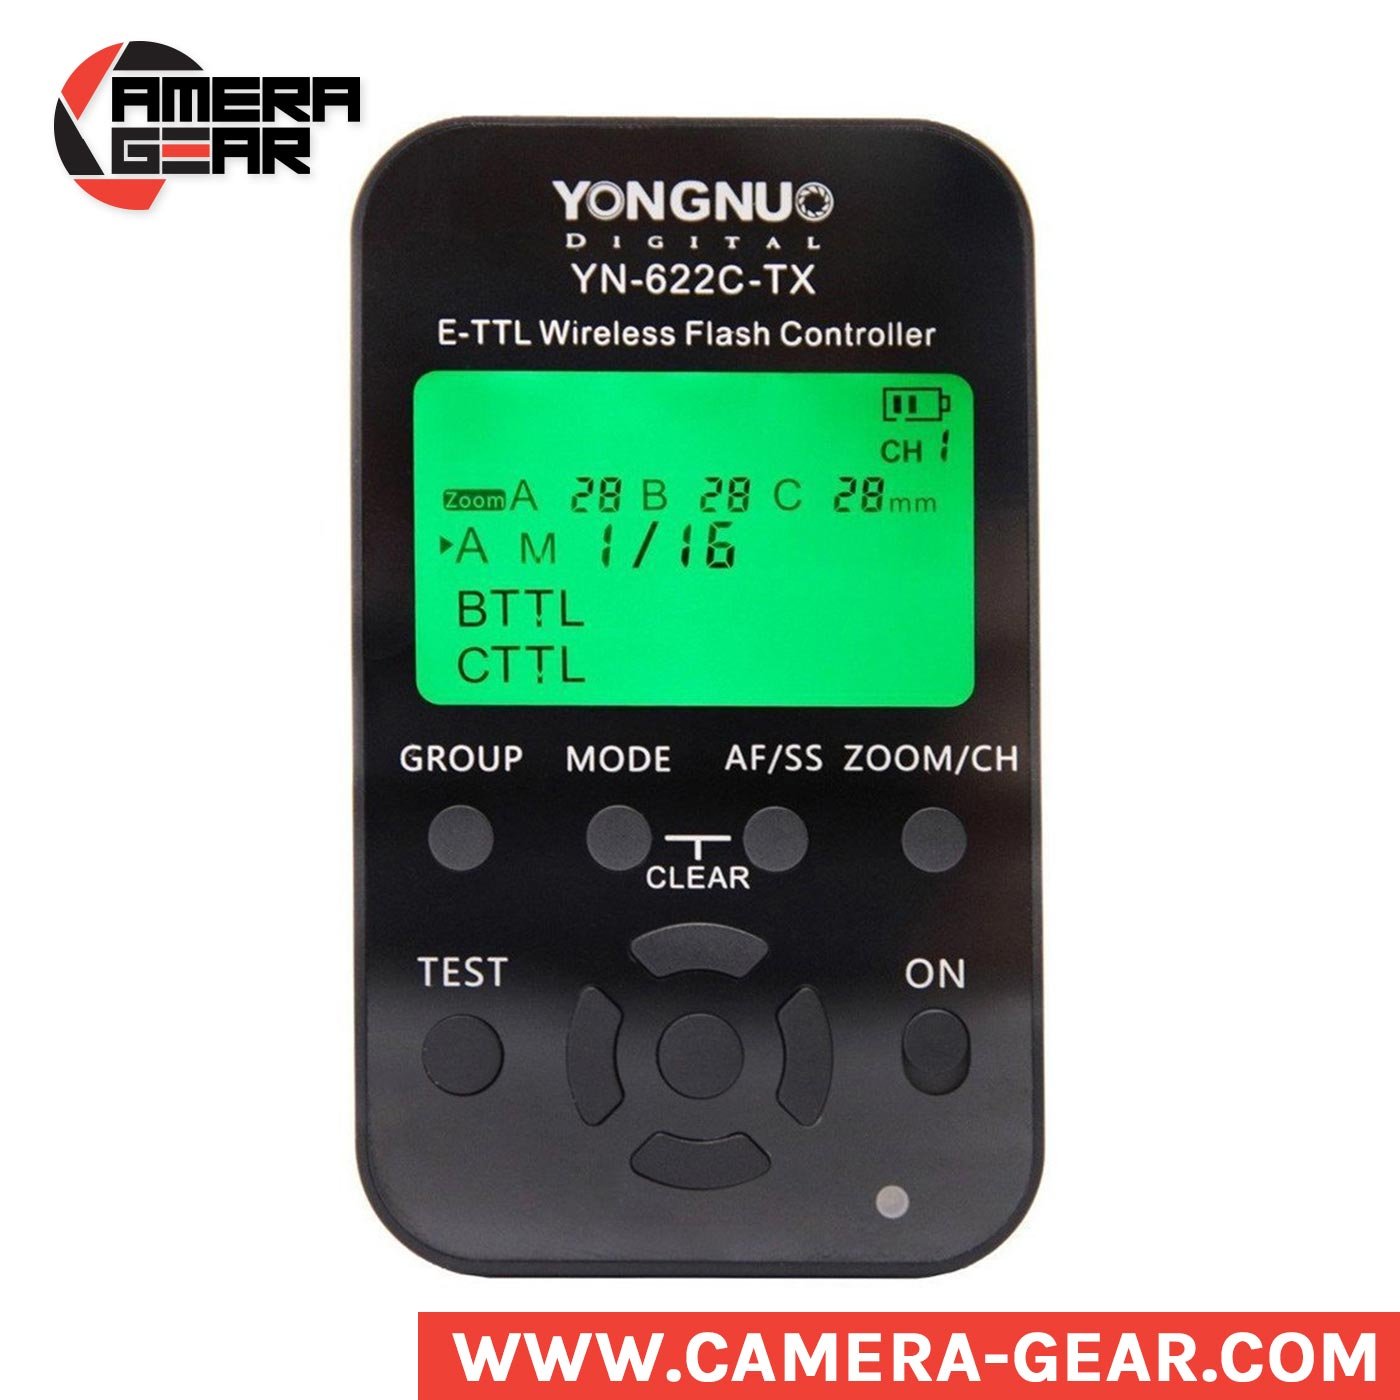 Yongnuo YN622C Kit consists of Yongnuo YN622C-TX commander unit and YN622C receiver unit. This YN622C kit is a great entry to the advanced wireless flash control. Compatible with all Canon E-TTL cameras, the controller slides directly into the hot shoe and utilizes a 2.4 GHz frequency with a range of 100m to trigger the remote flashes. The controller also has e-TTL, manual, and multi flash modes available for full creative control of a flash unit mounted on the YN622C Transceiver. Additionally, the system can utilize 7 channels and 3 groups for setting up multiple flash units easily and efficiently.